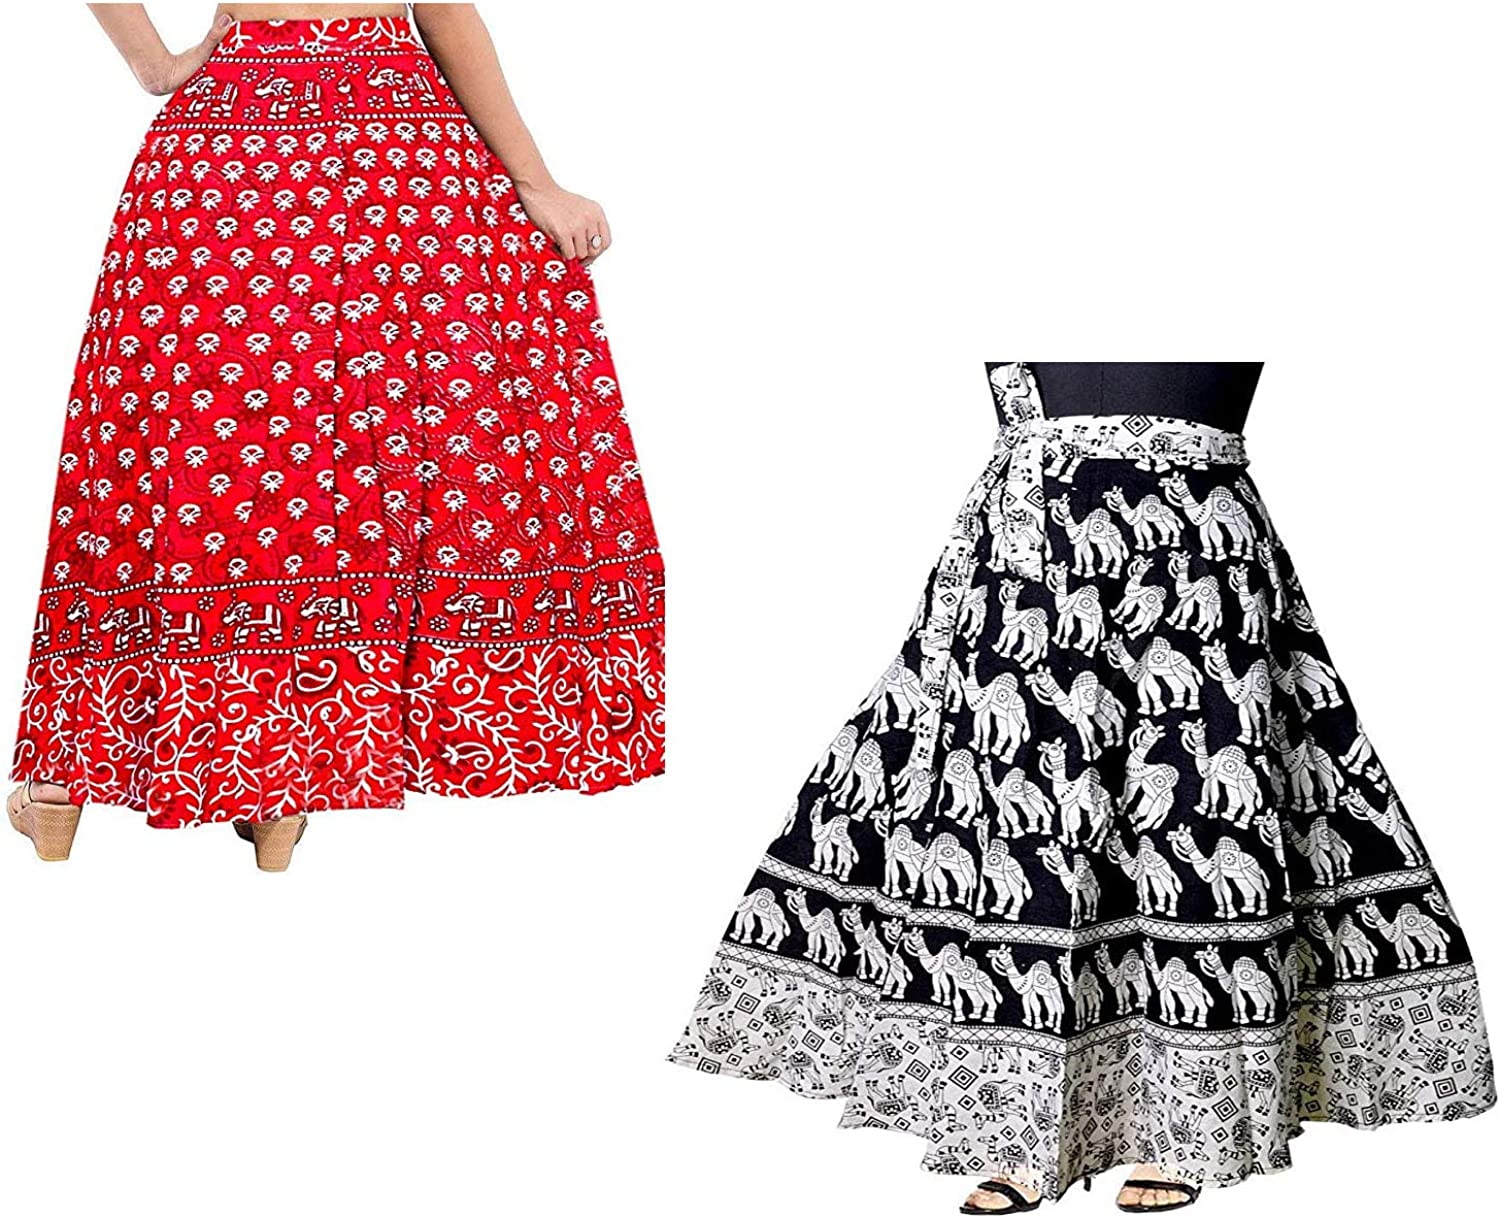 Cotton Skirt in Colorful and Floral Print Casual Wear for Women Pack of 2